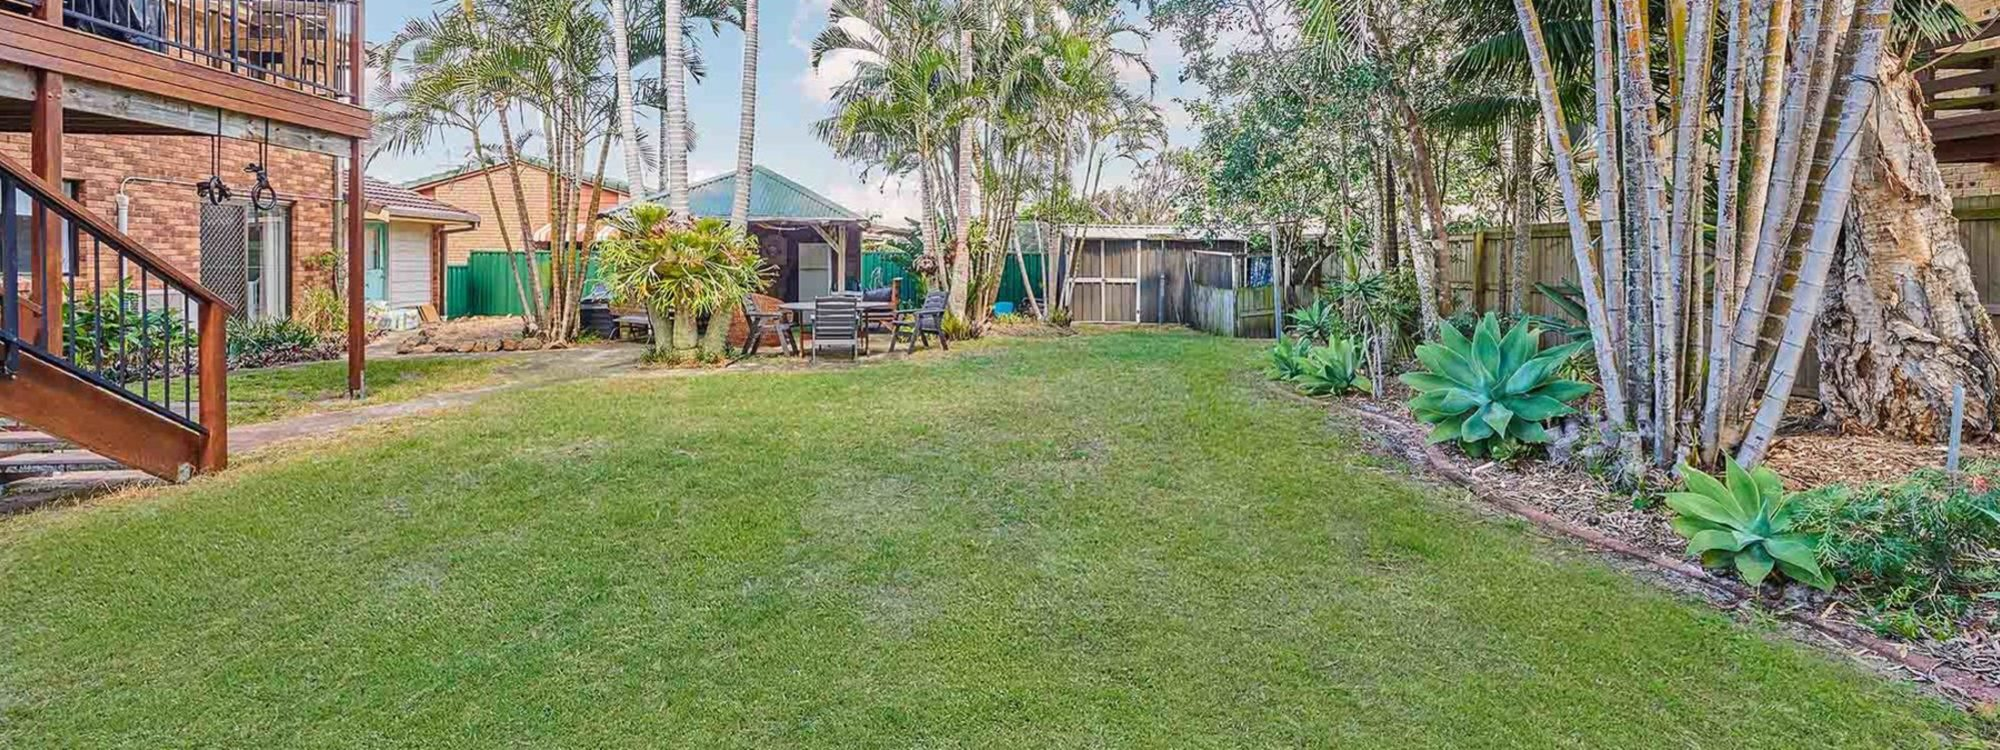 Sea Breeze - Lennox Head - Backyard to Cabana